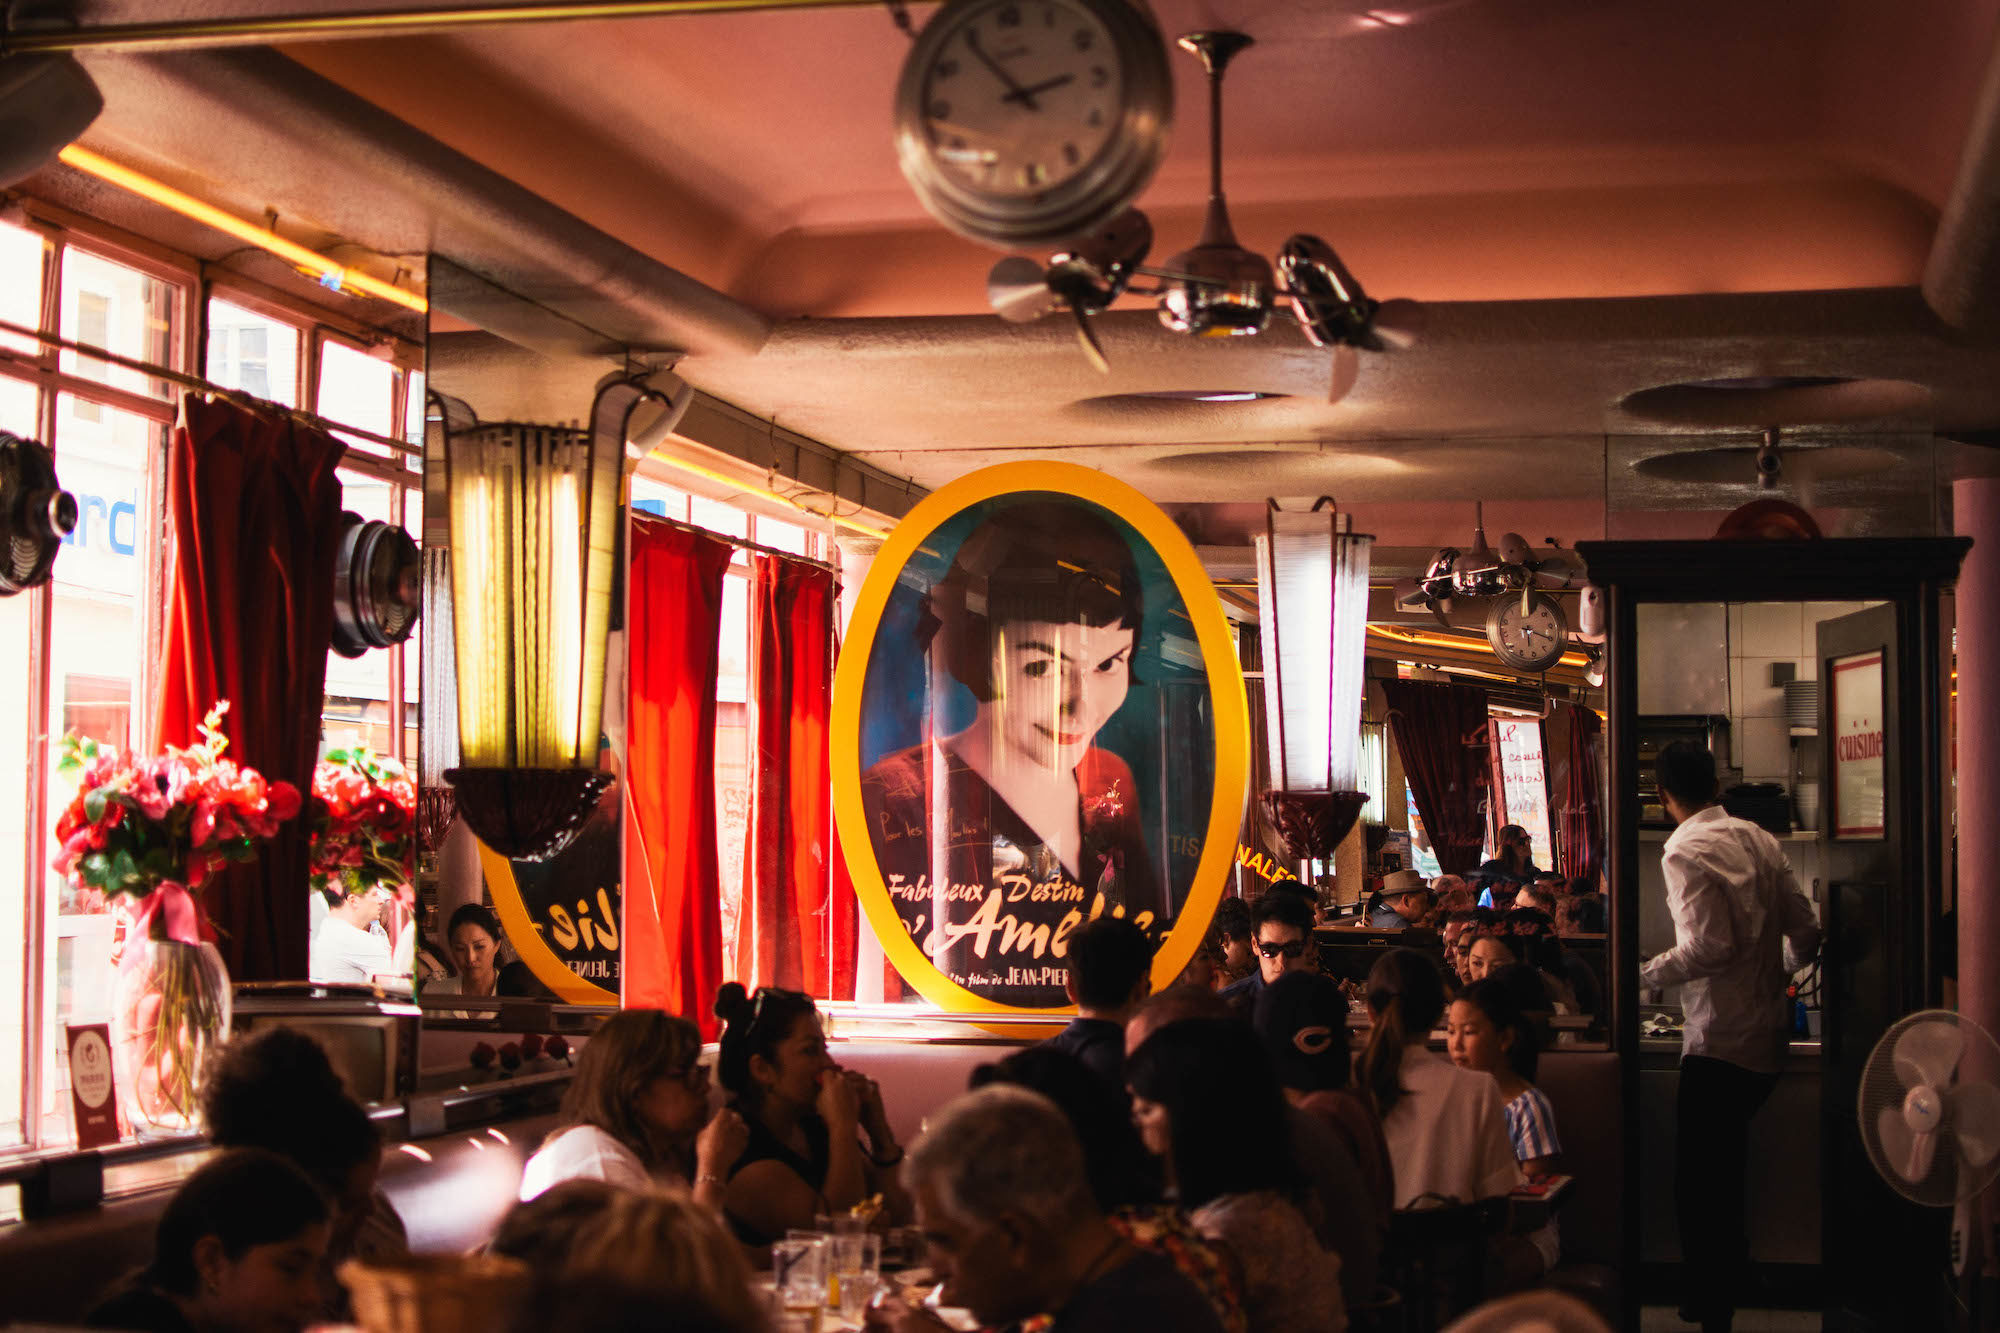 """Inside the Café des 2 Moulins, otherwise known as the café in the movie """"Amélie"""", with an image of Amélie printed on a glass pane and people sat in booths."""